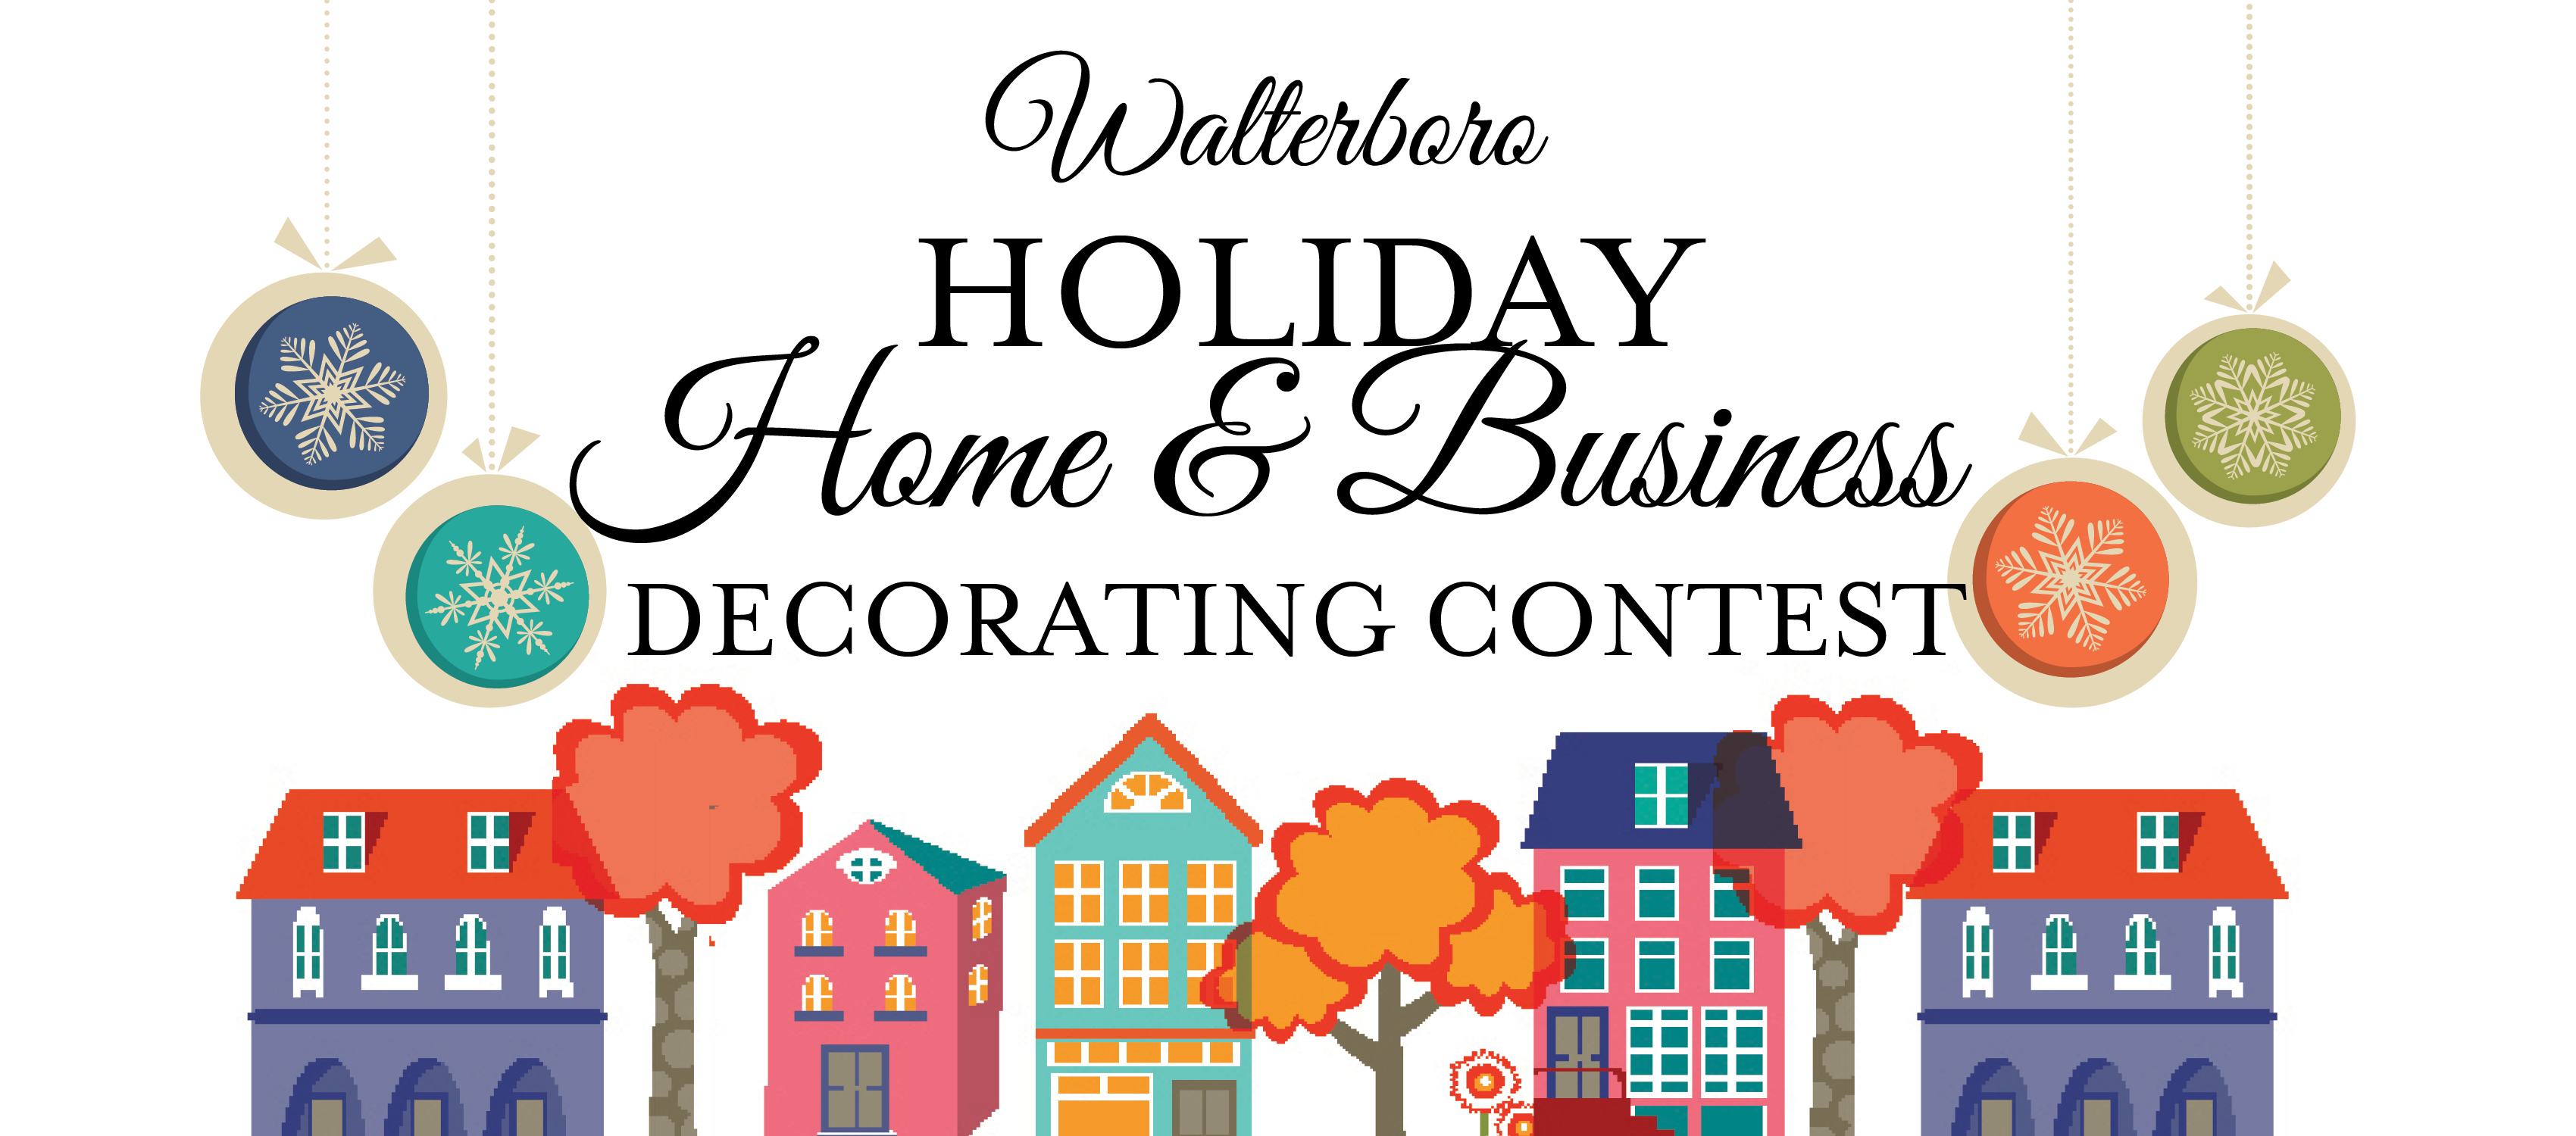 Holiday Home Business Decorating Contest Walterboro Sc